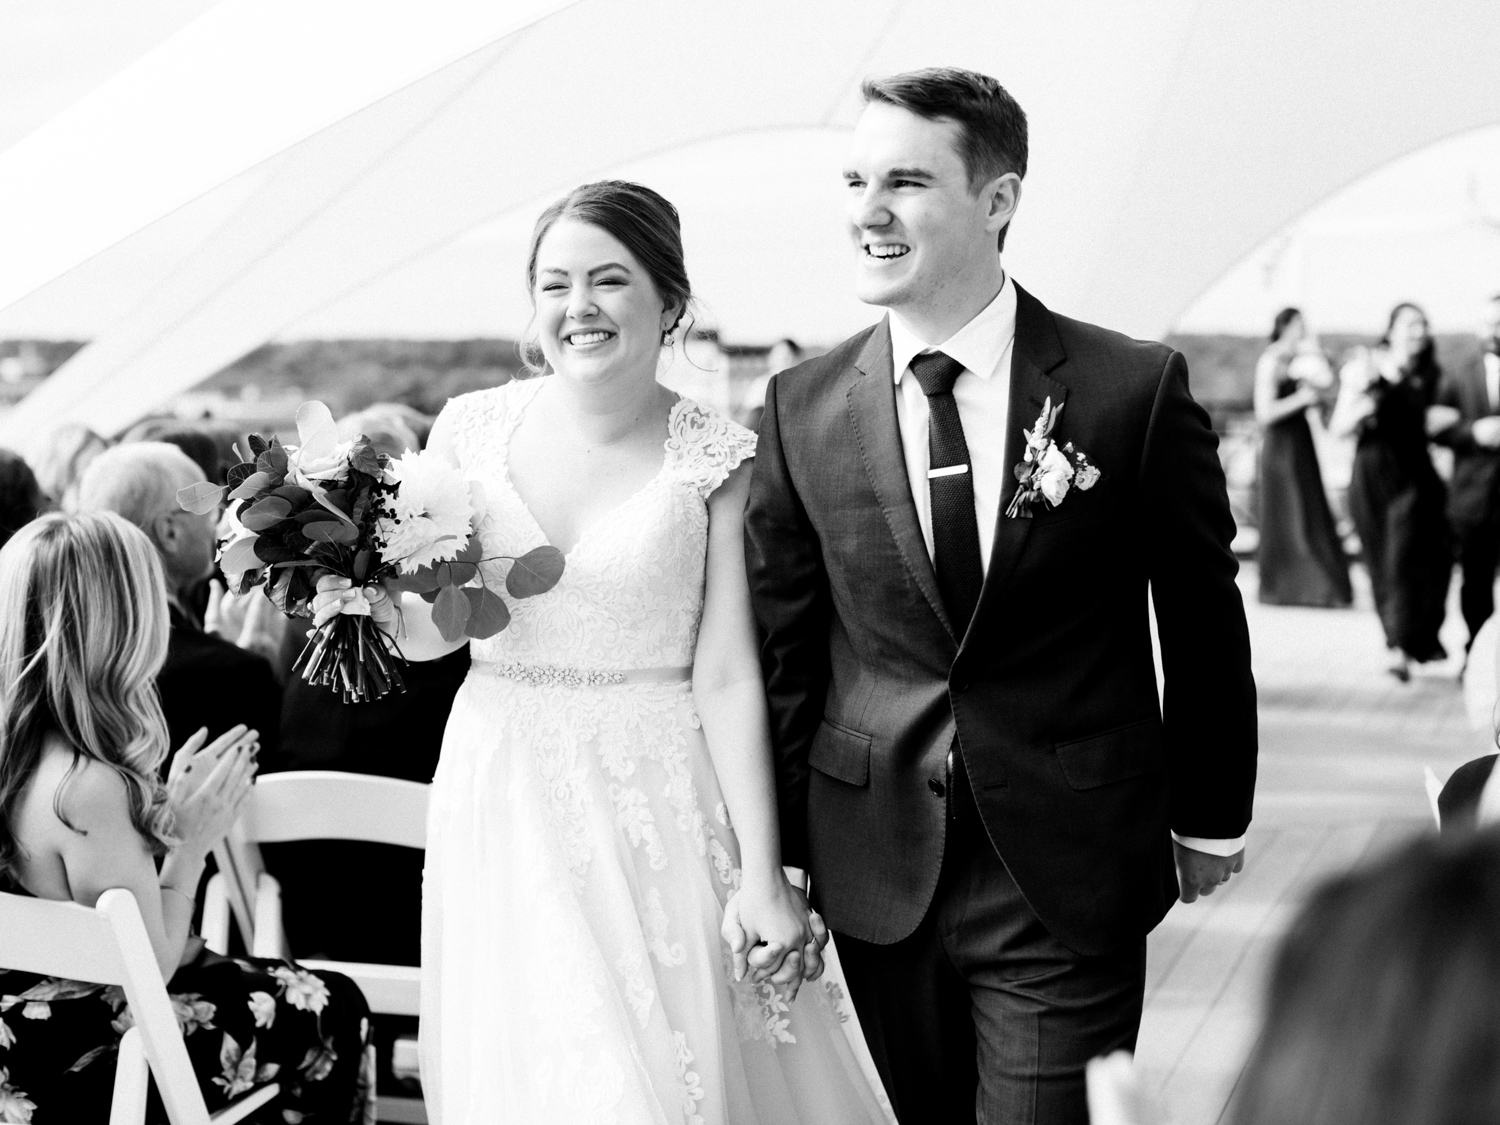 A smiling, newly-married couple holds hands and walks back down the aisle